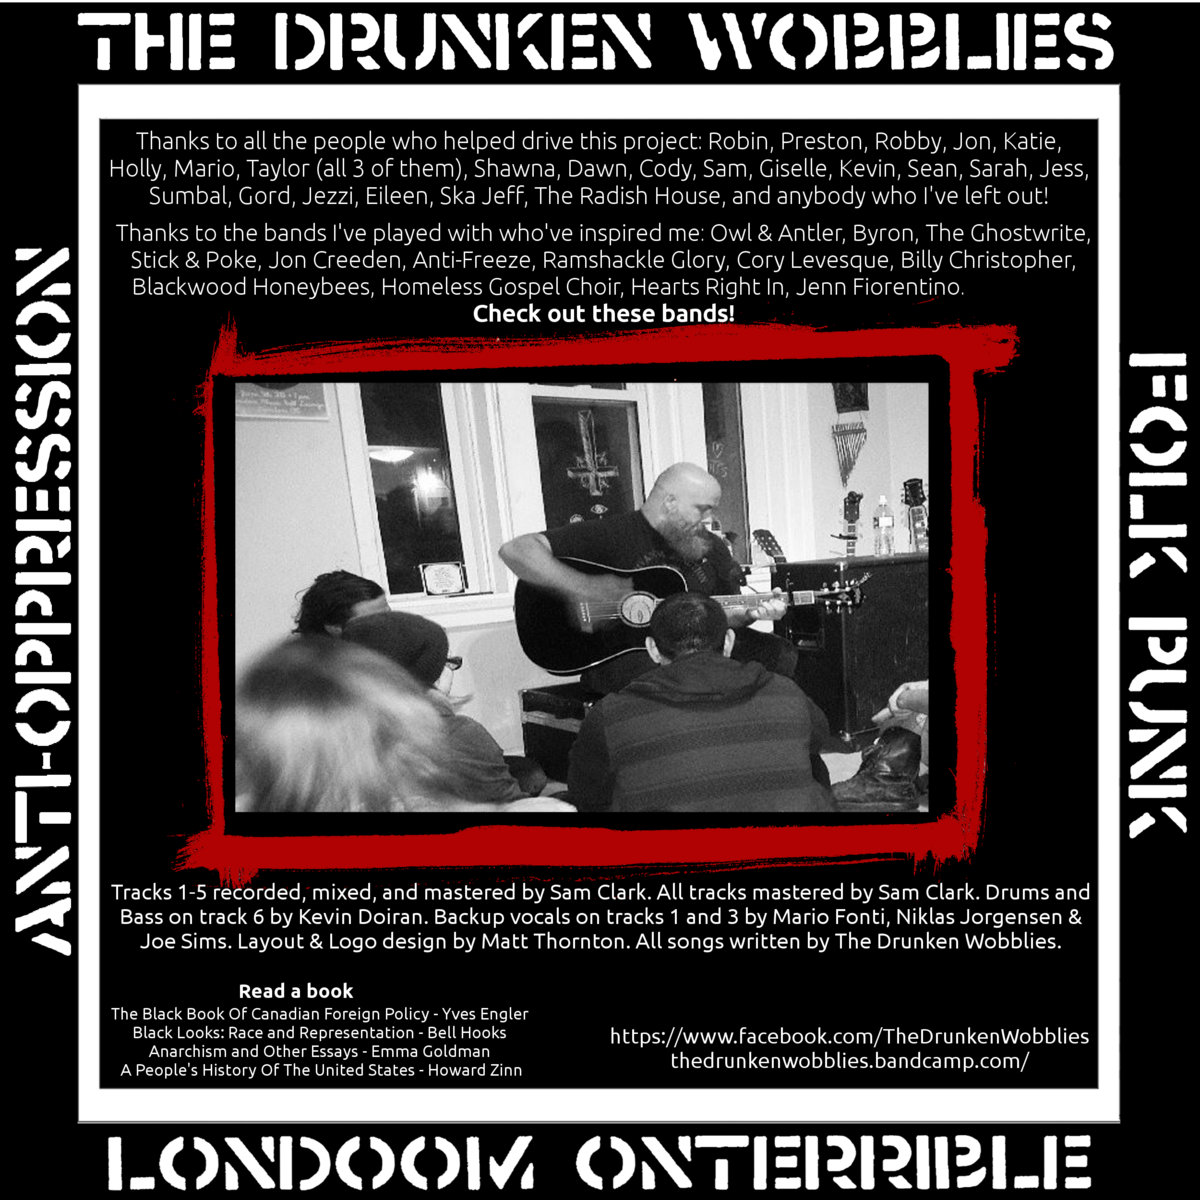 londoom onterrible the drunken wobblies package image middot package image middot package image